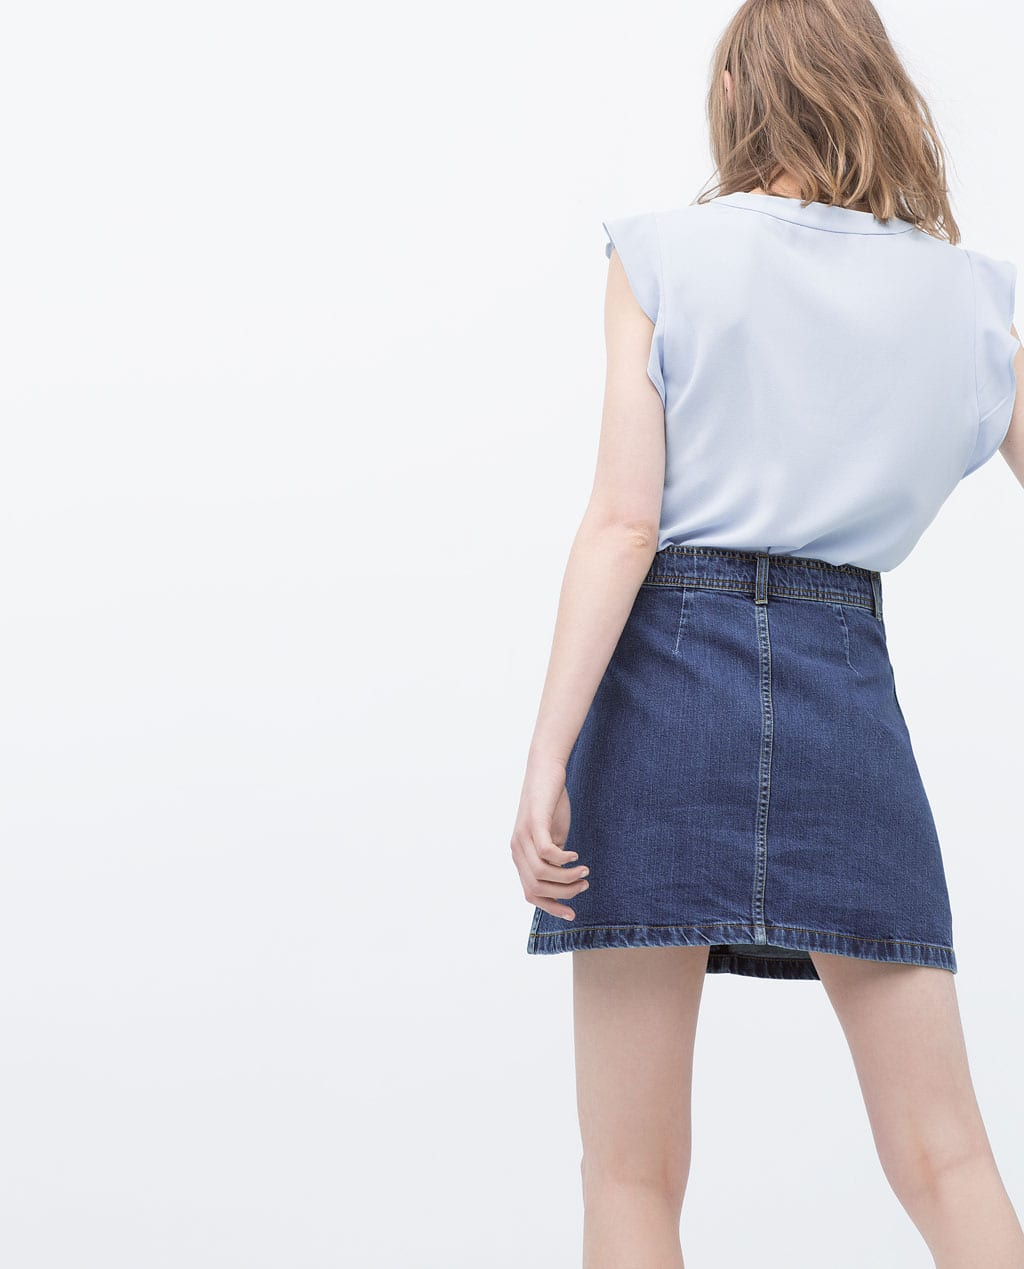 StyleAndMinimalism | L'Amour | Zara 70s Denim Skirt with Pockets